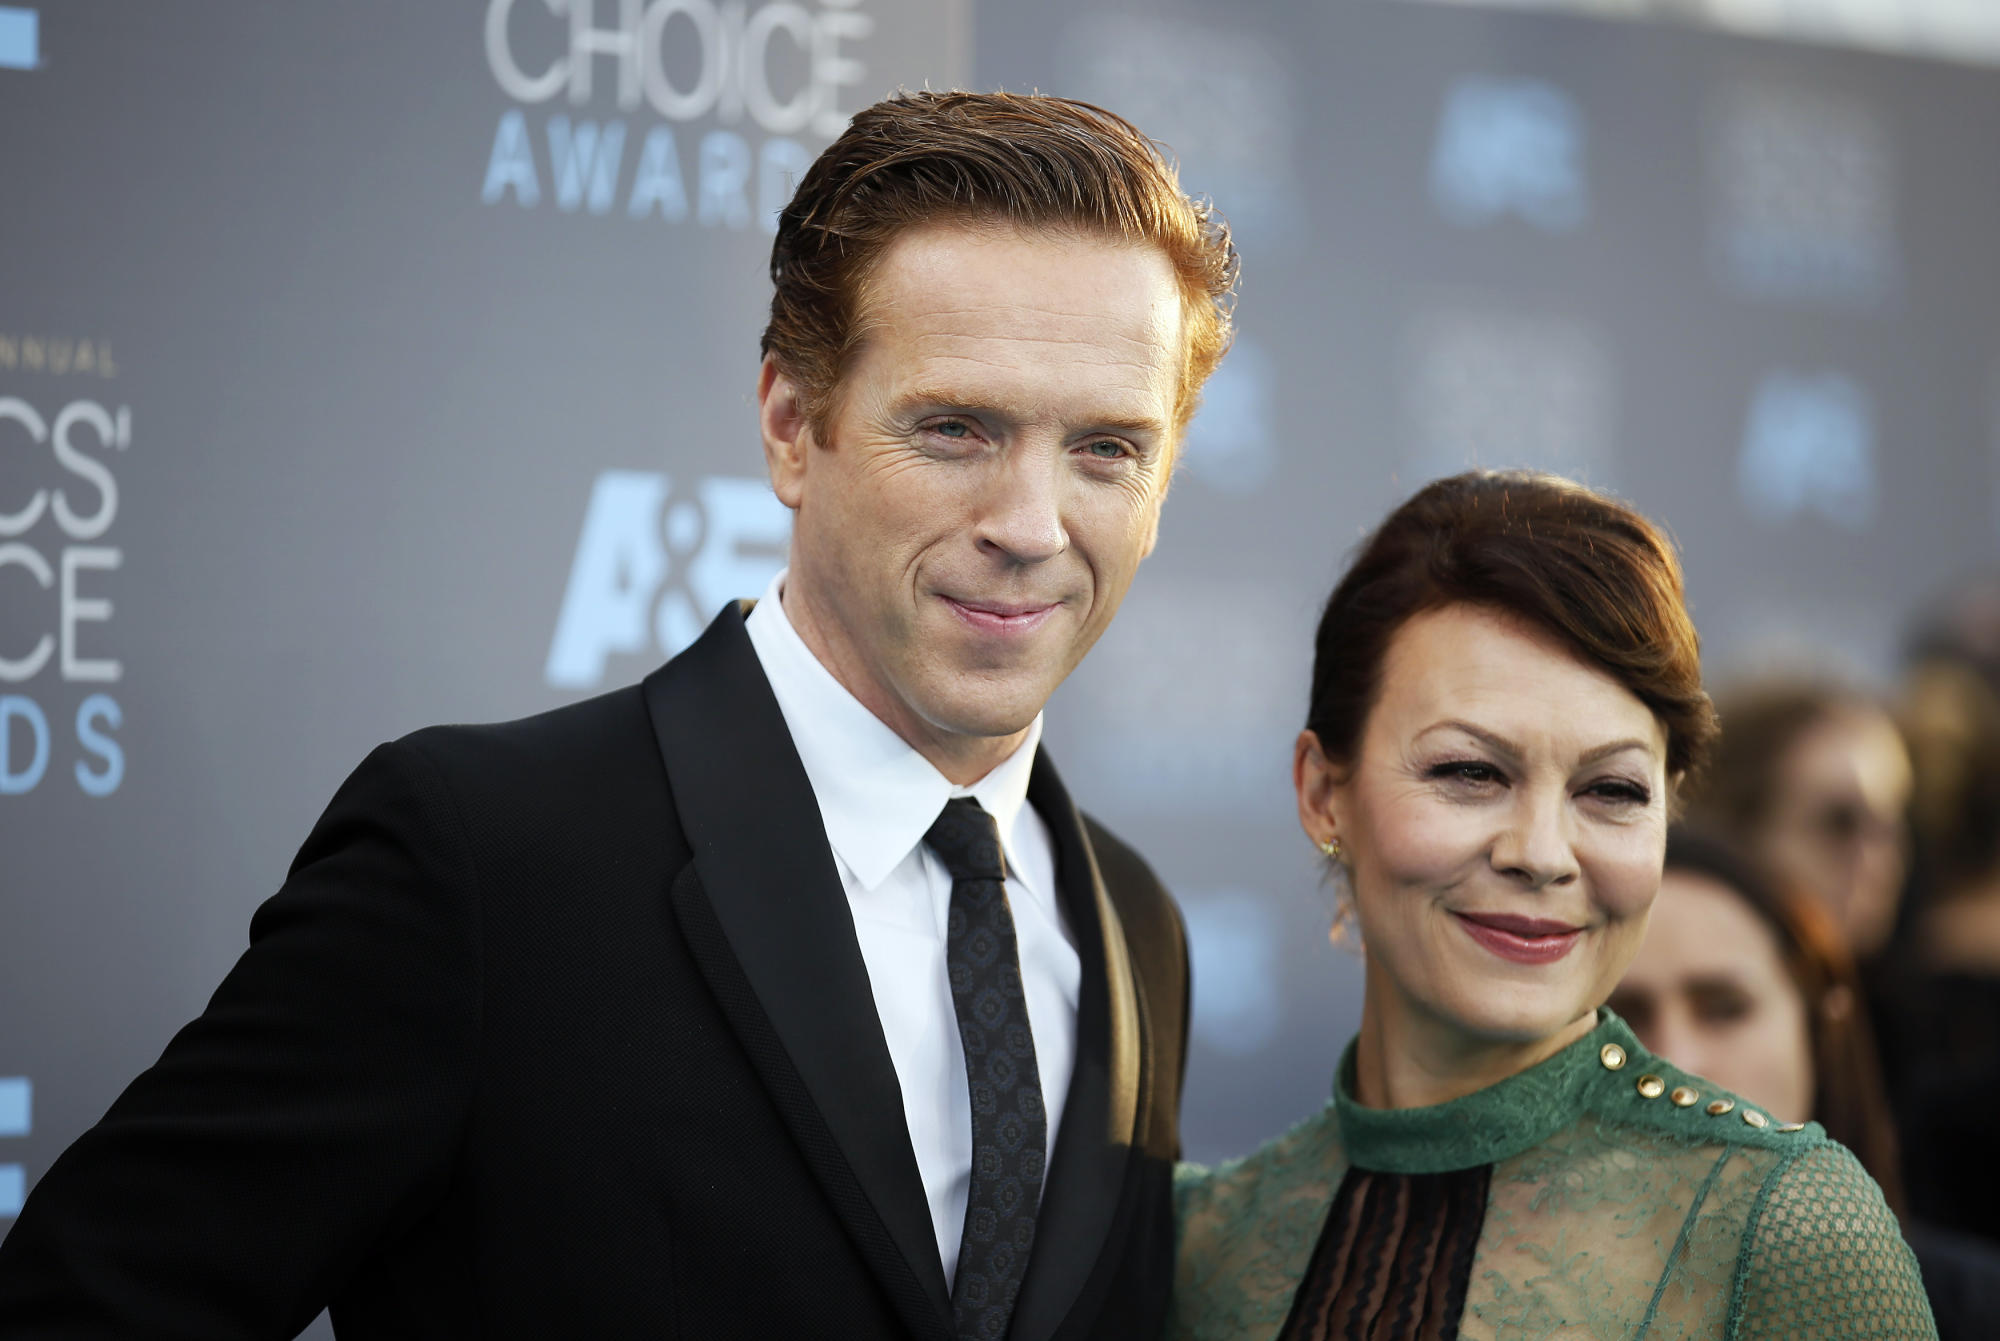 Damian Lewis writes emotional tribute to wife Helen McCrory following actress's death from cancer: 'Already I miss her' - Yahoo Entertainment